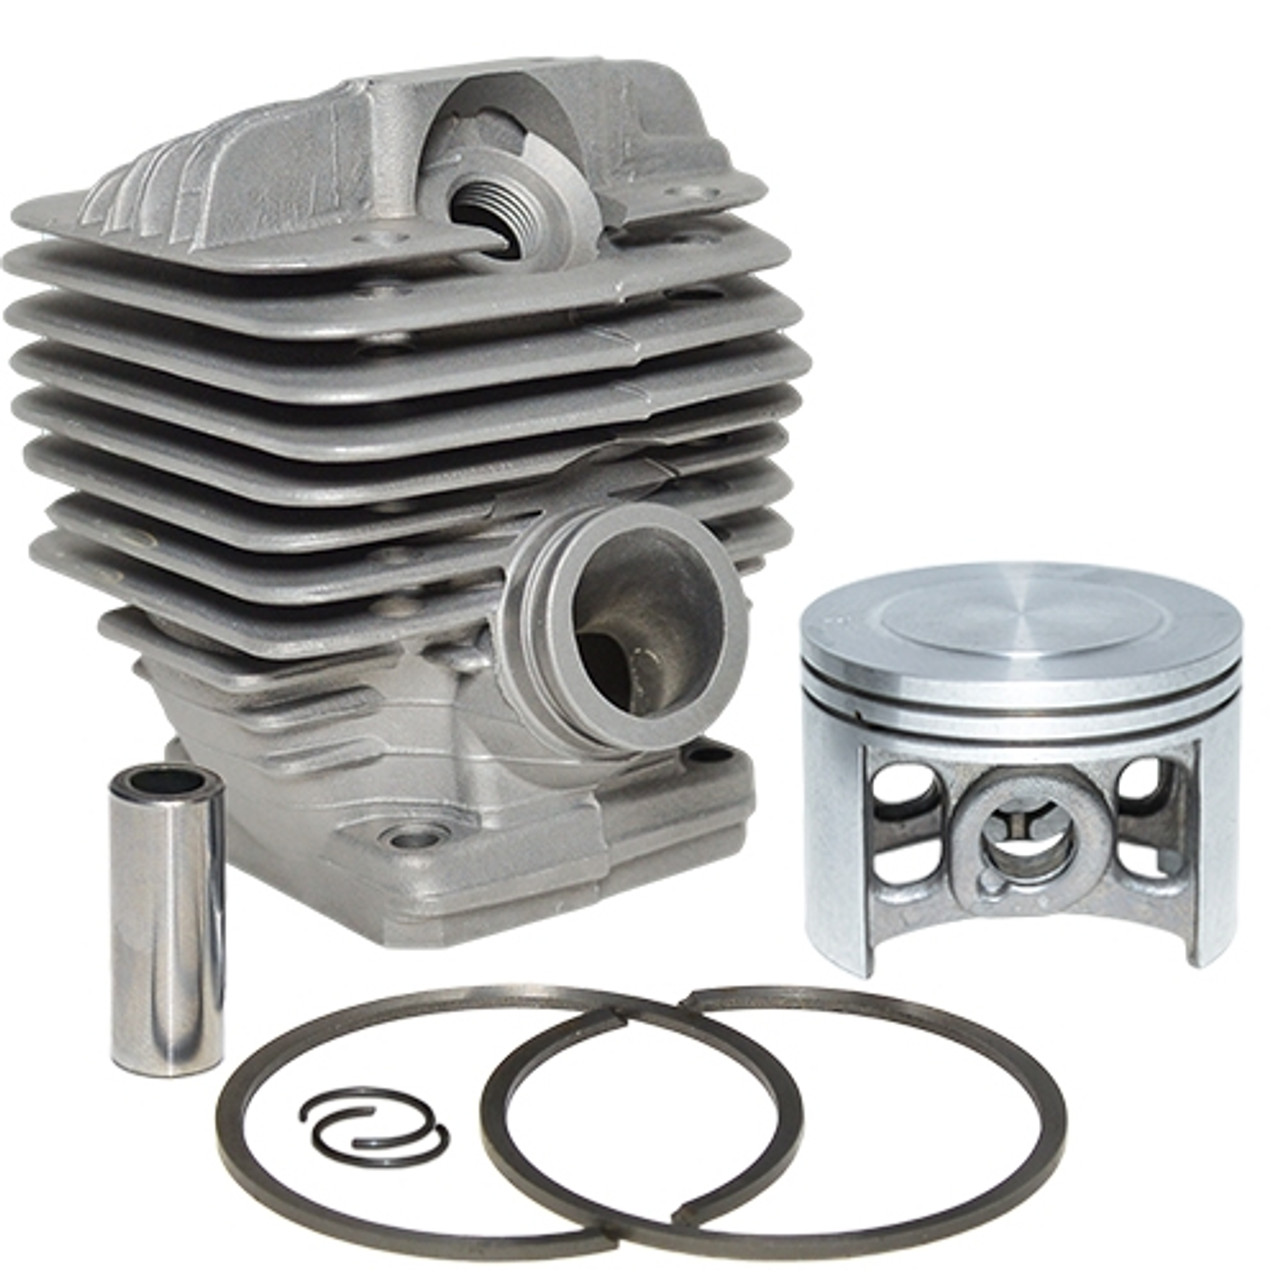 Hyway cylinder and pop up piston with Caber rings for Stihl 066 MS660 54mm